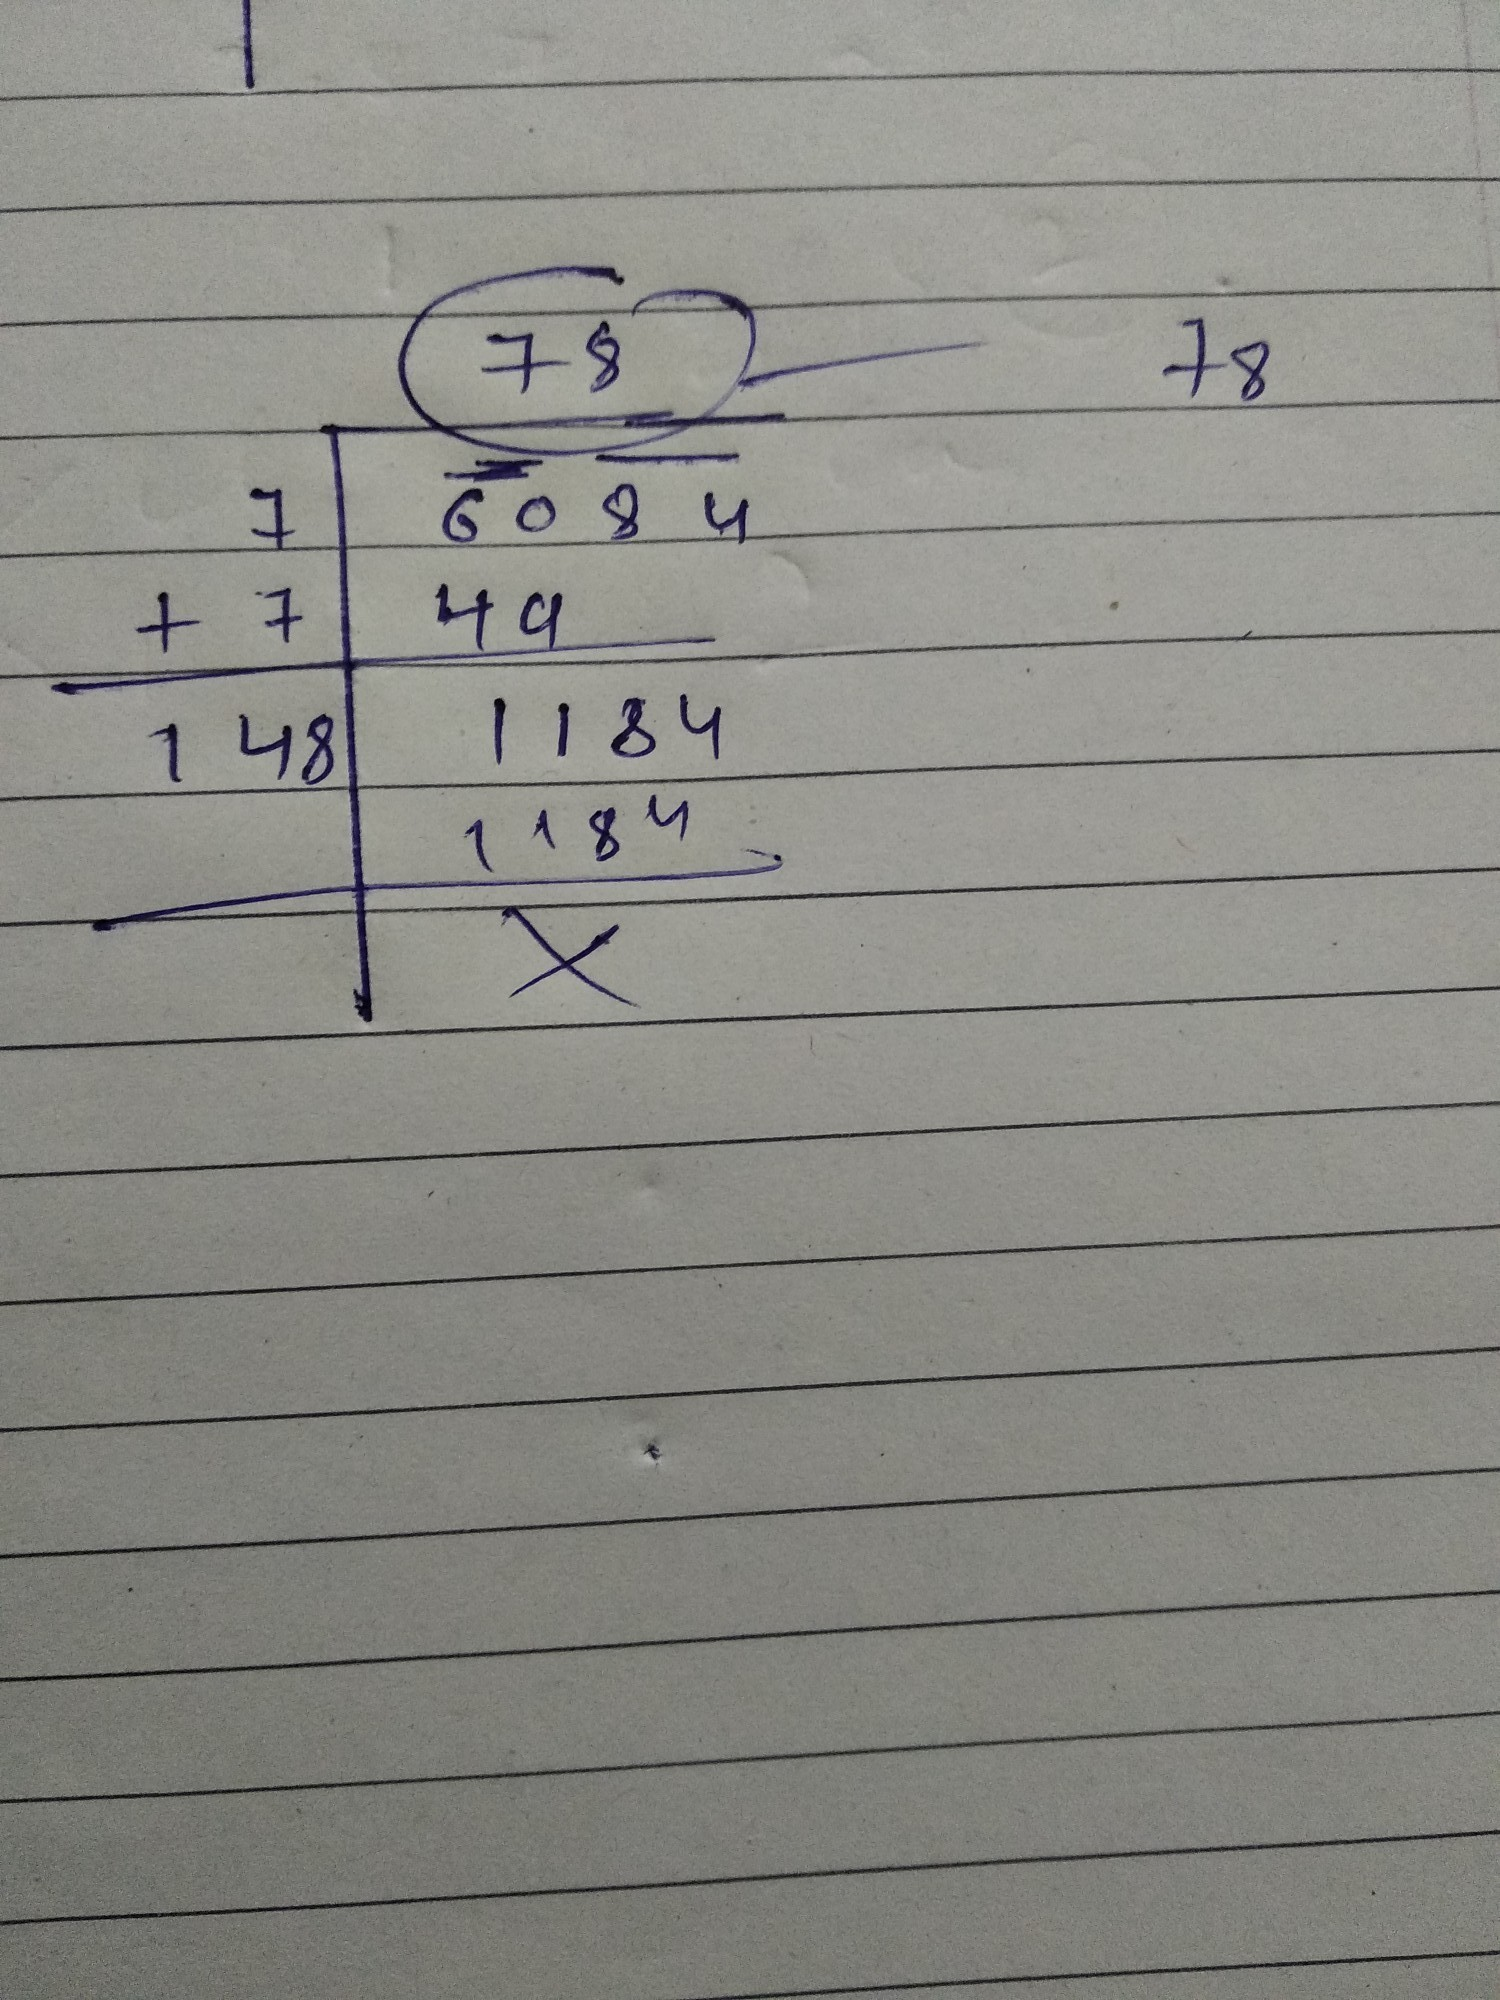 find the square root of 7056 by long division method